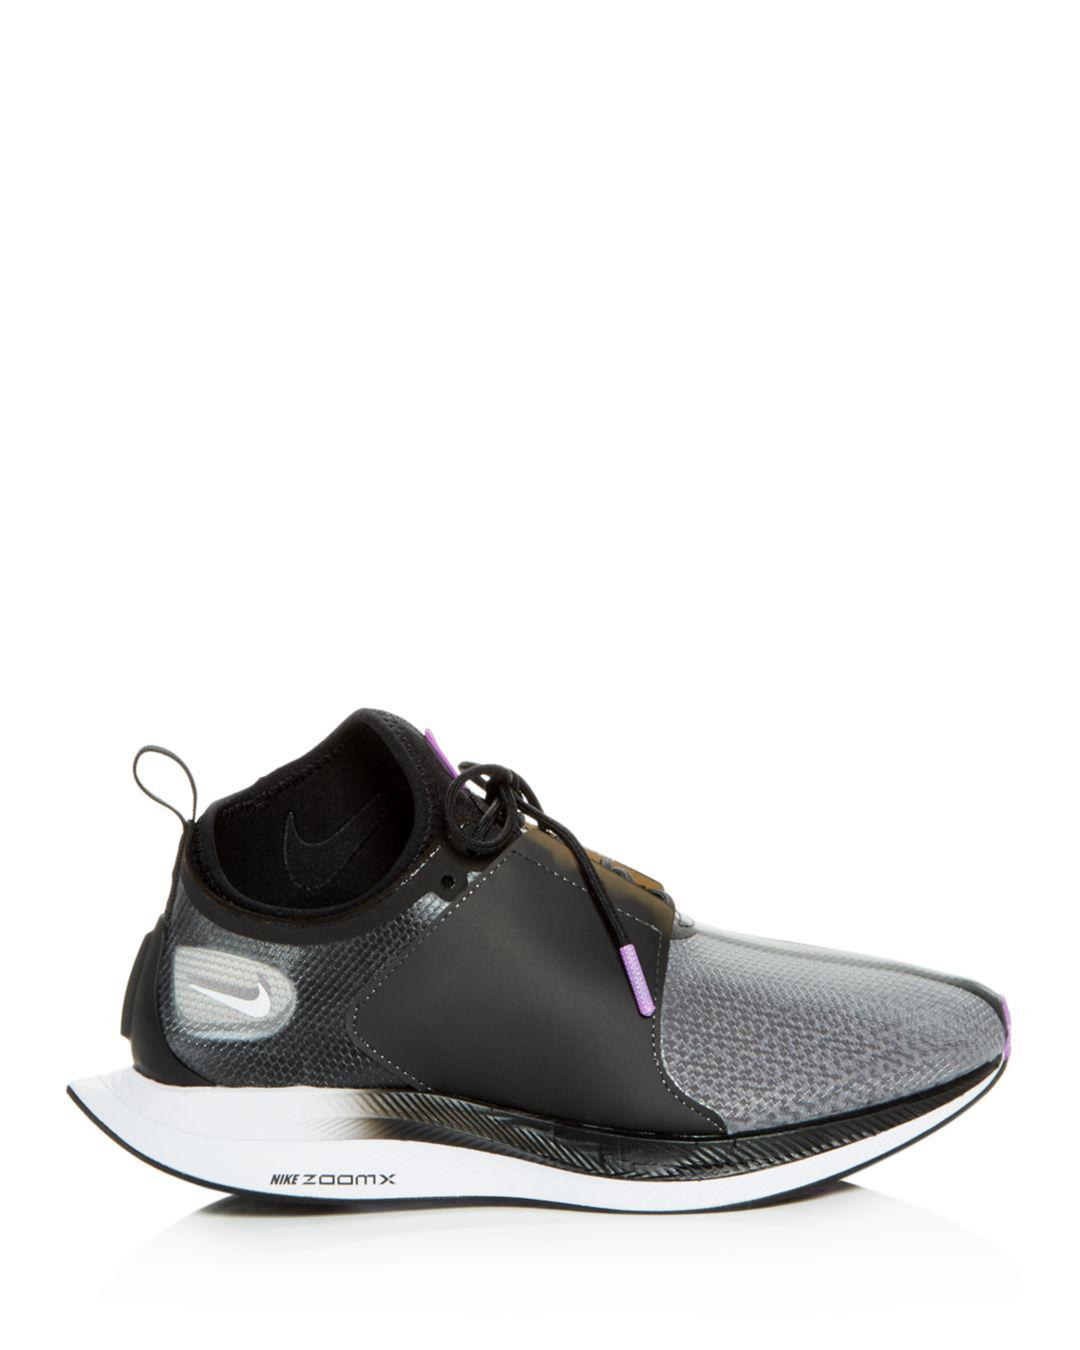 f7ad5a786e01 Lyst - Nike Women s Zoom Pegasus Turbo Xx Lace-up Sneakers in Black